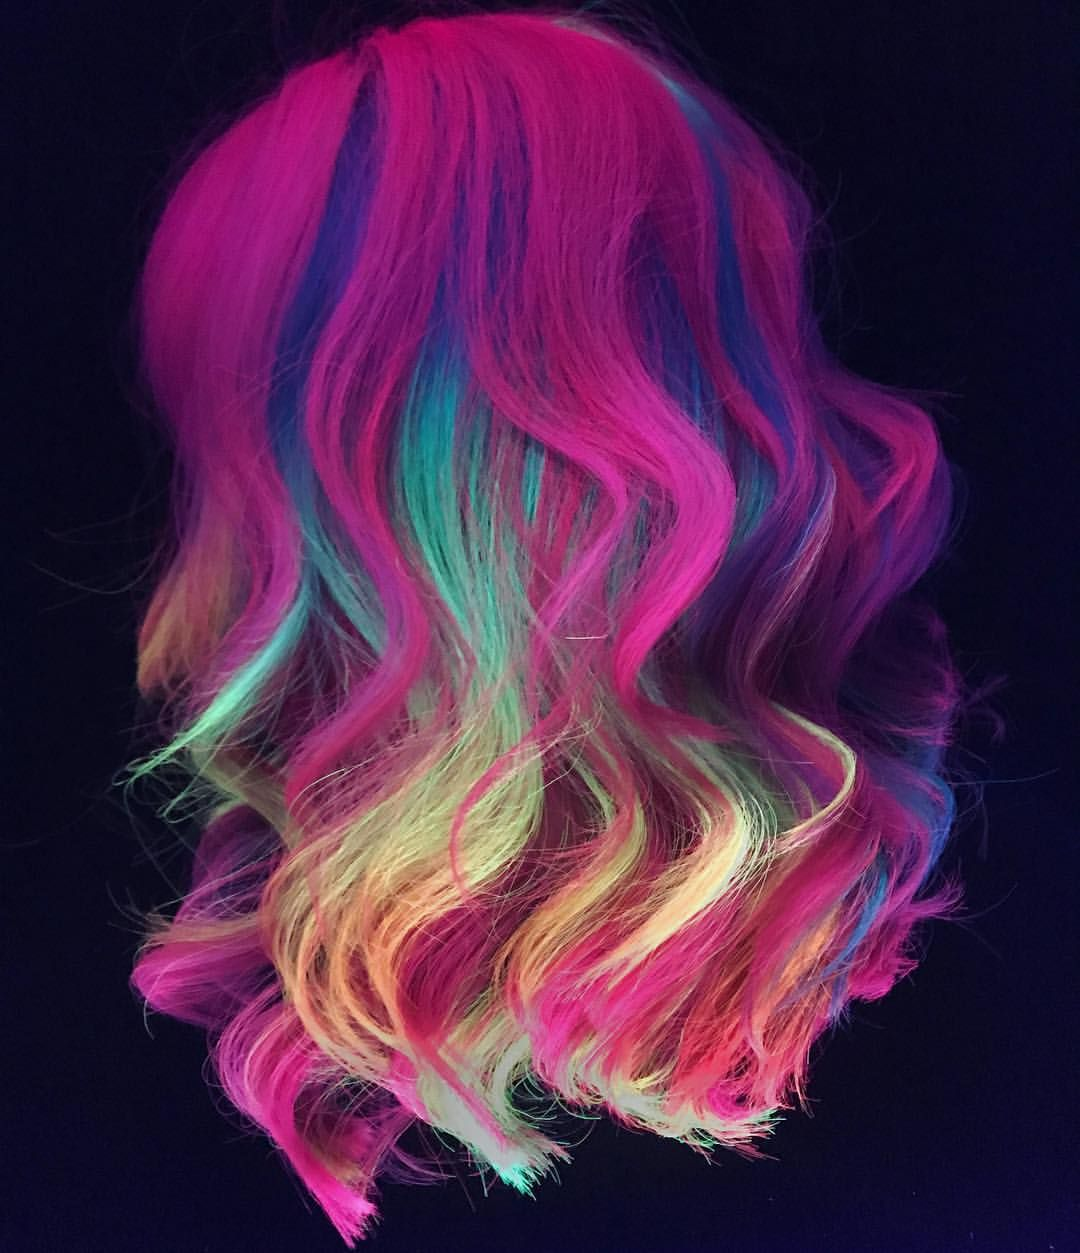 Black Lit Because I M Obsessed With These Blacklight Shots Kenraprofessional Neons Btconeshot Vibrant18 Neon Hair Vivid Hair Color Neon Hair Color